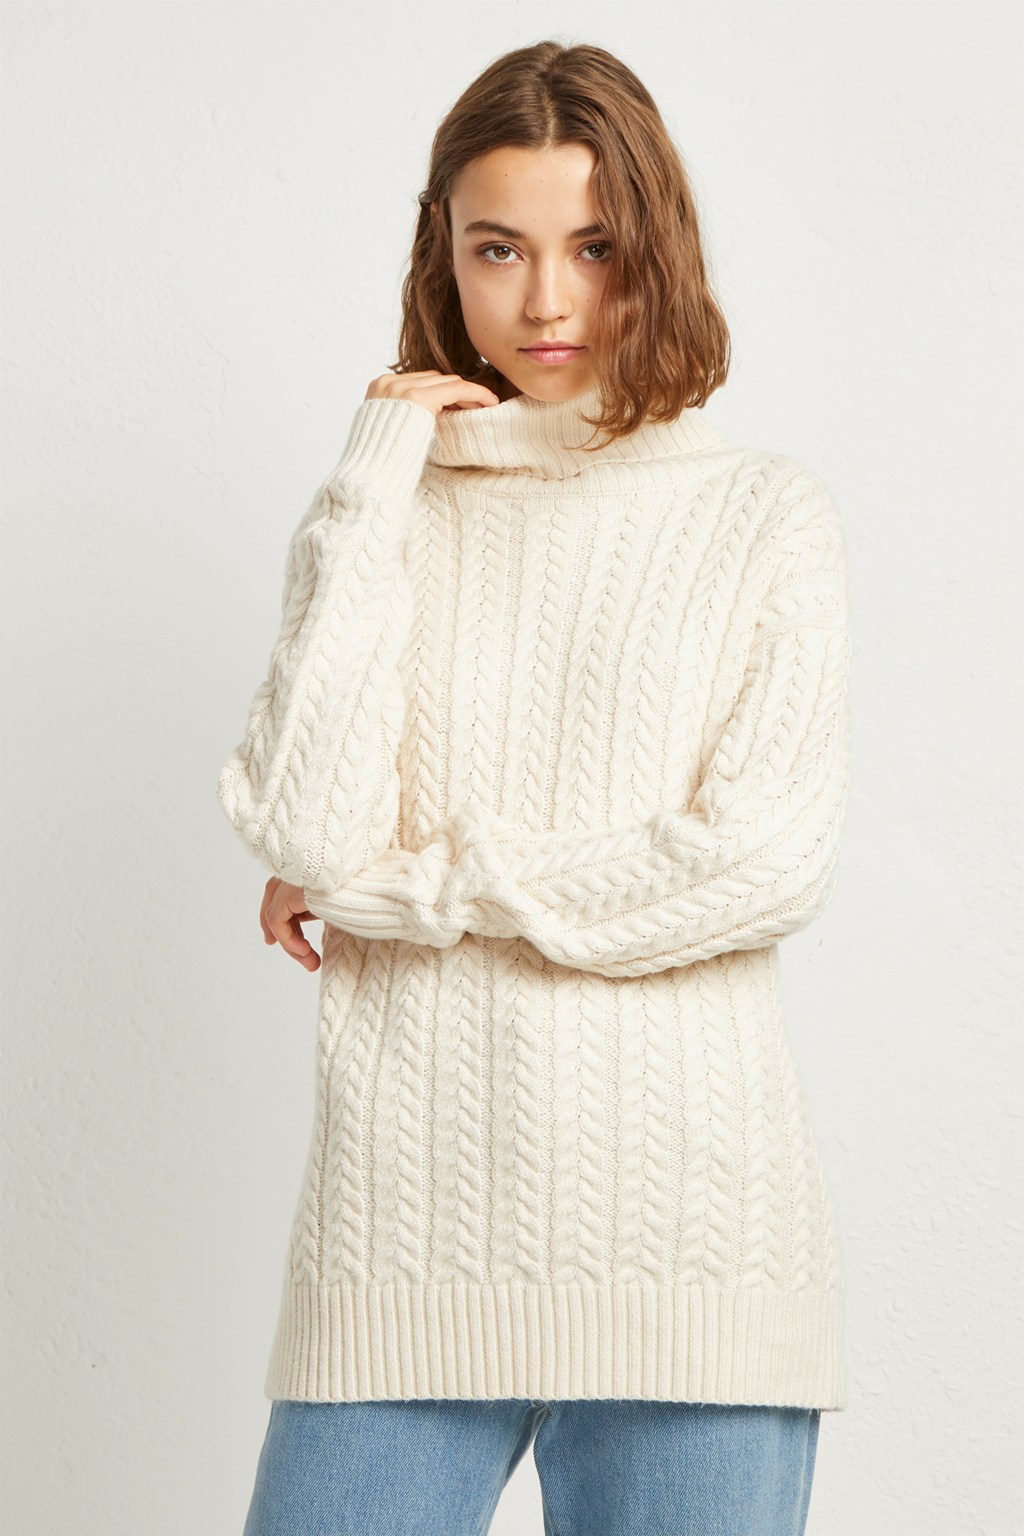 6c6f8f0f390a6b Rita Cable Knit Jumper. loading images.